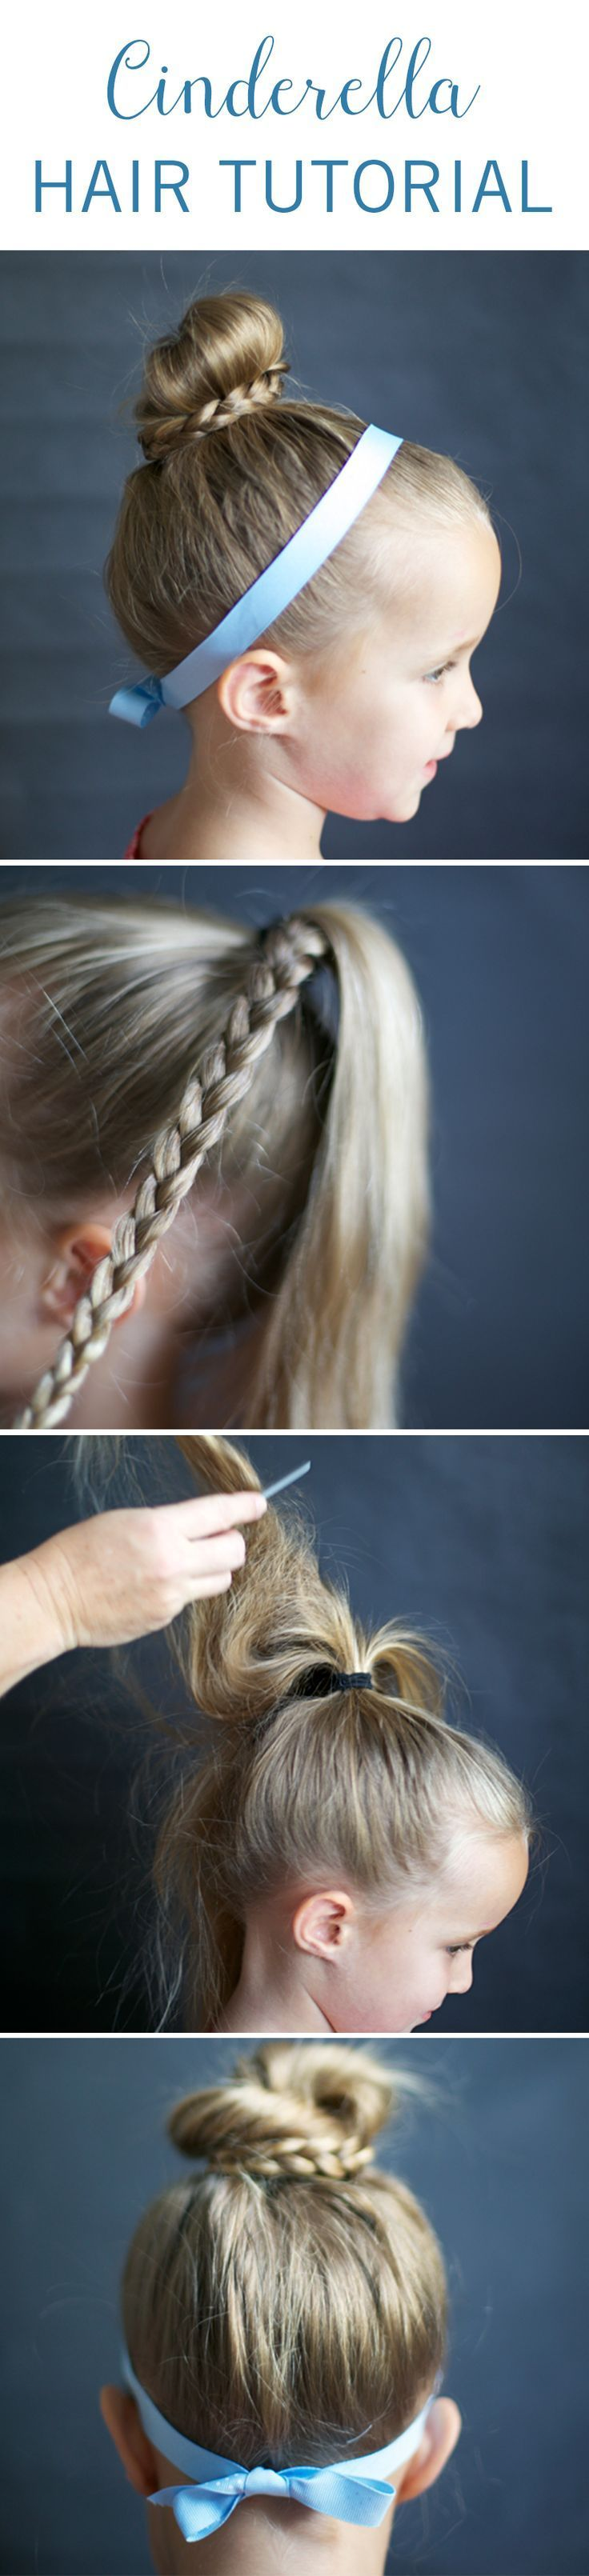 Give your little princess the royal treatment with the help of this Cinderella hair tutorial. It's the perfect hairstyle to pair with a Halloween costume, a tea party, or just an extra styled look for school. #Disney